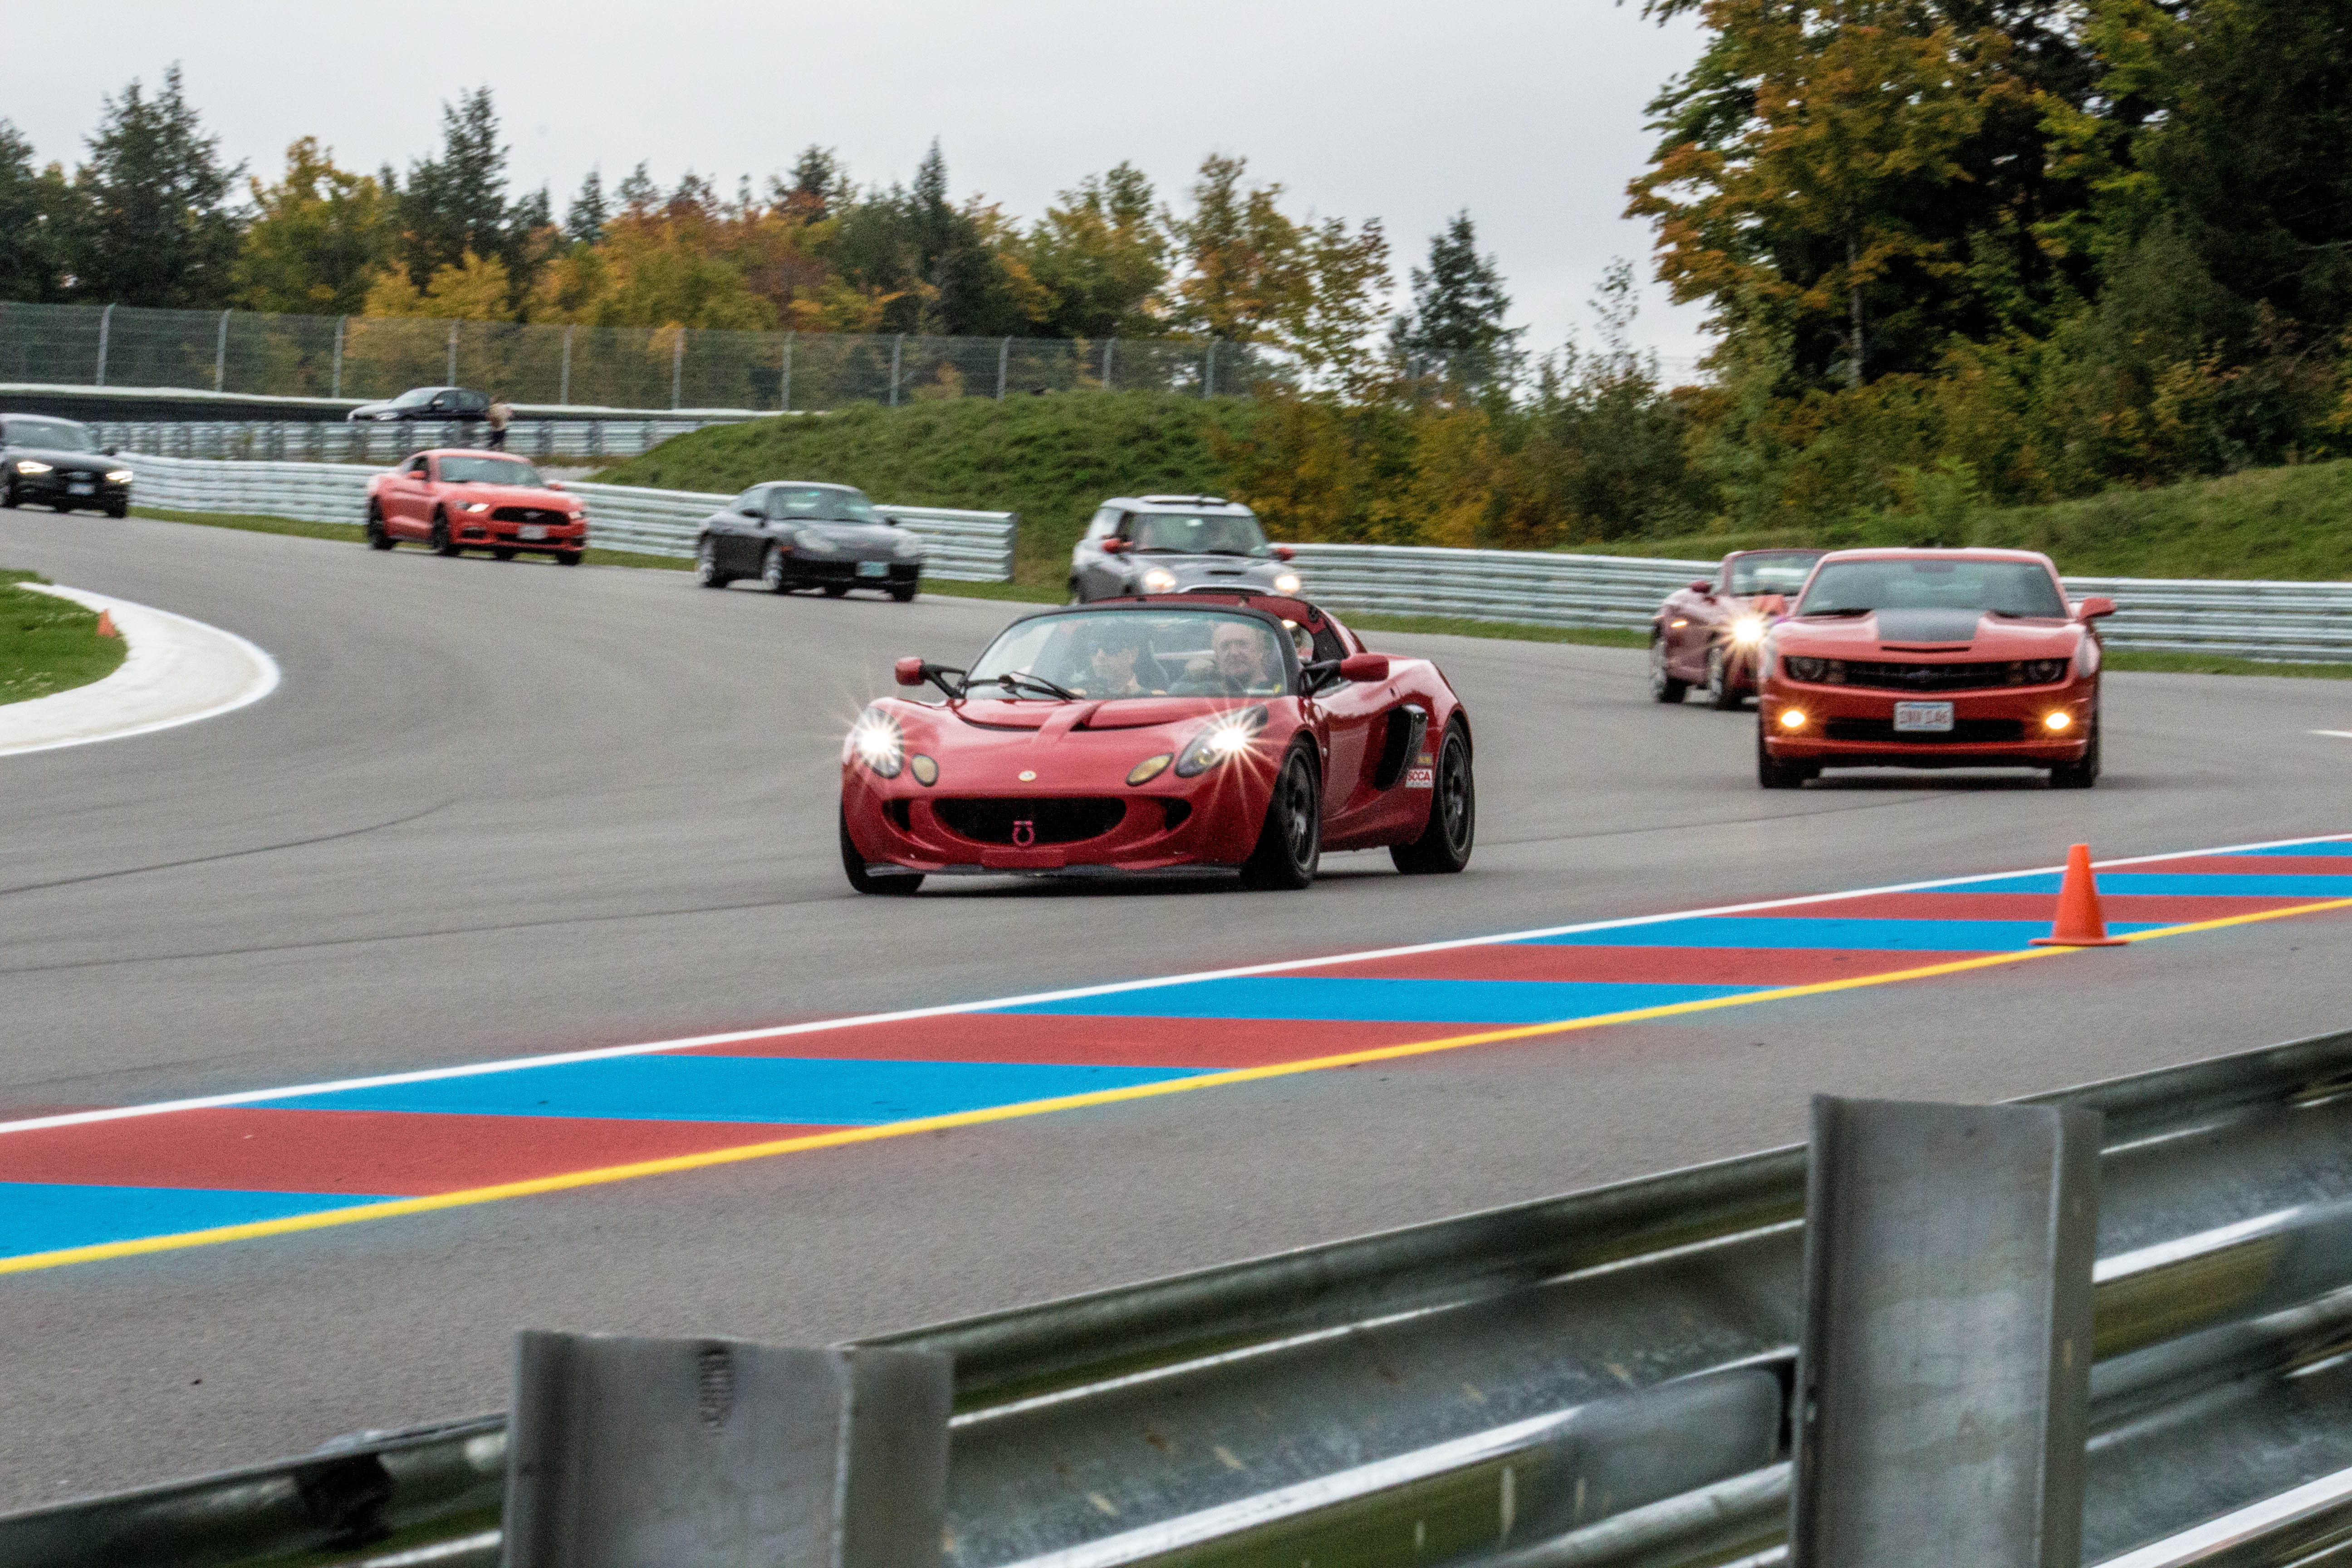 Pace Car Leading the Pack